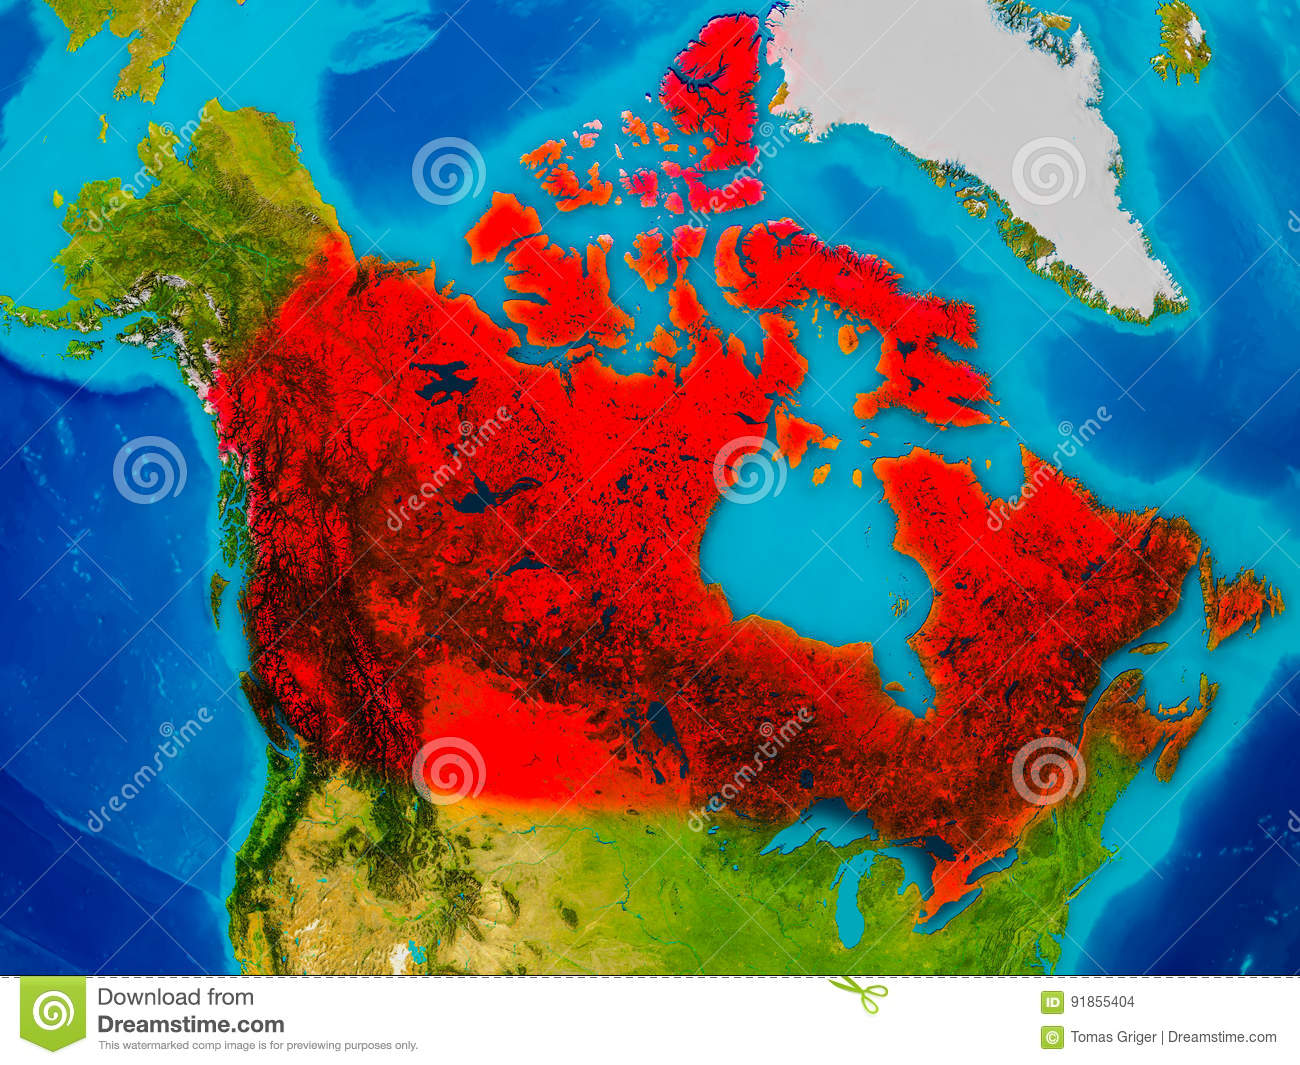 Canada on physical map stock illustration. Illustration of geography ...